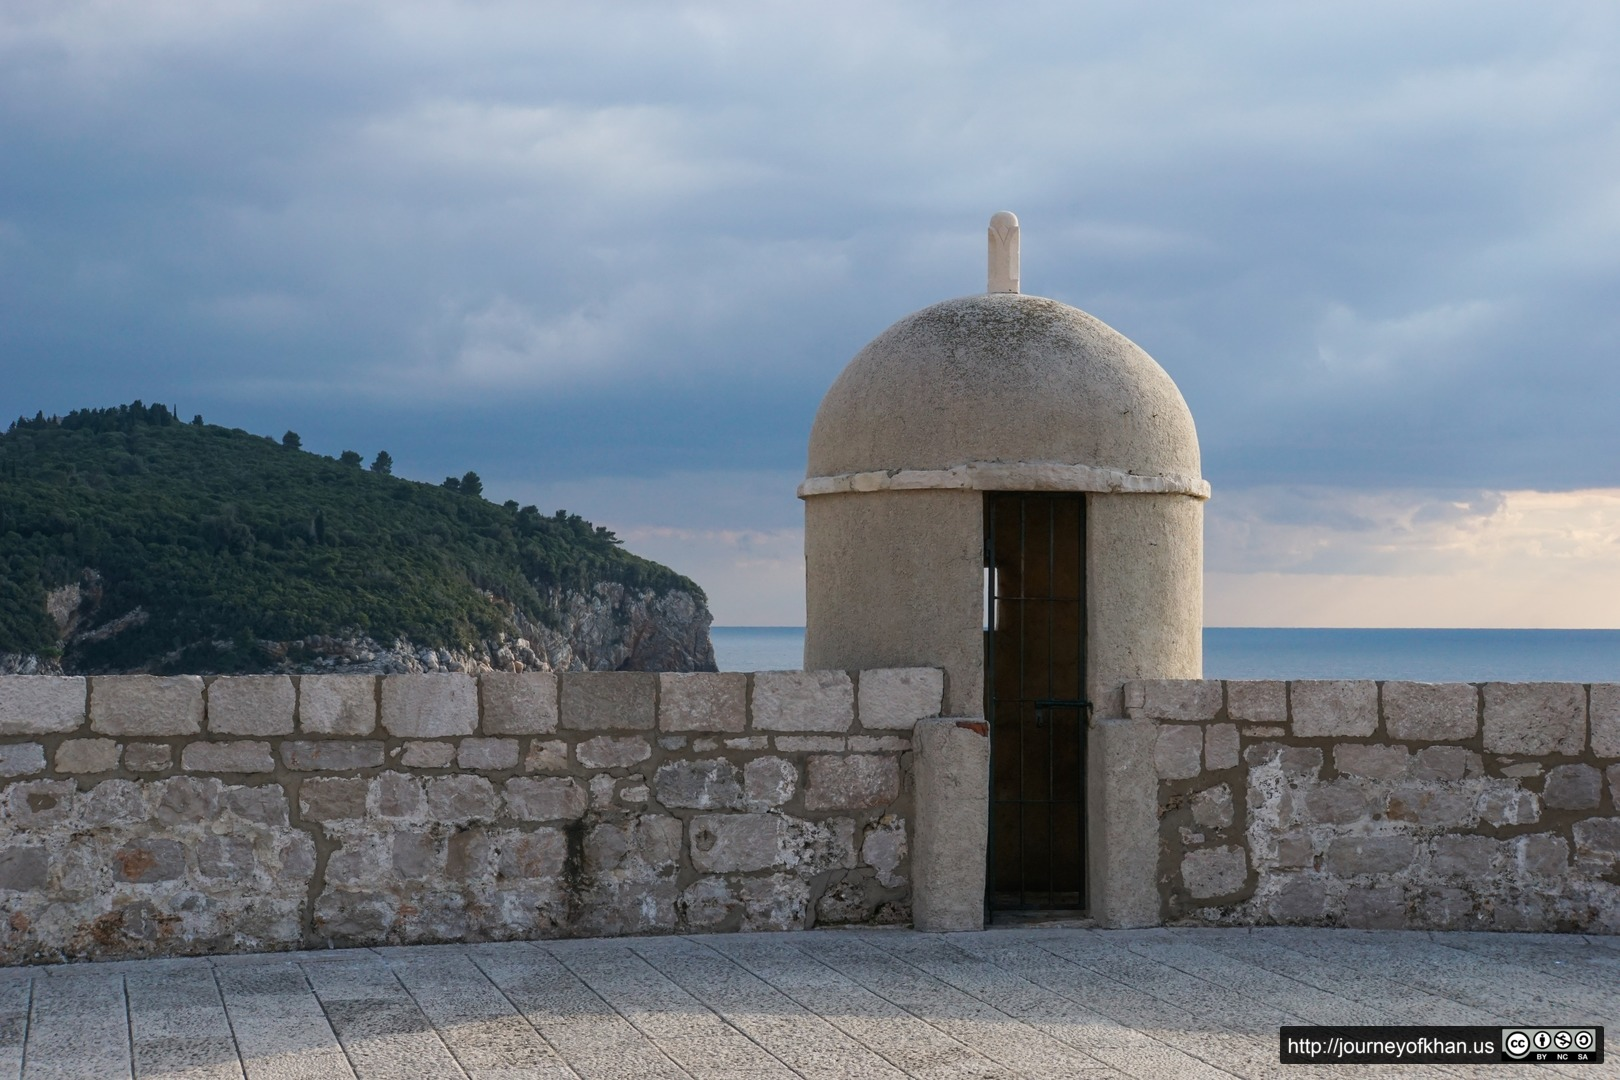 The Watchman of Dubrovnik